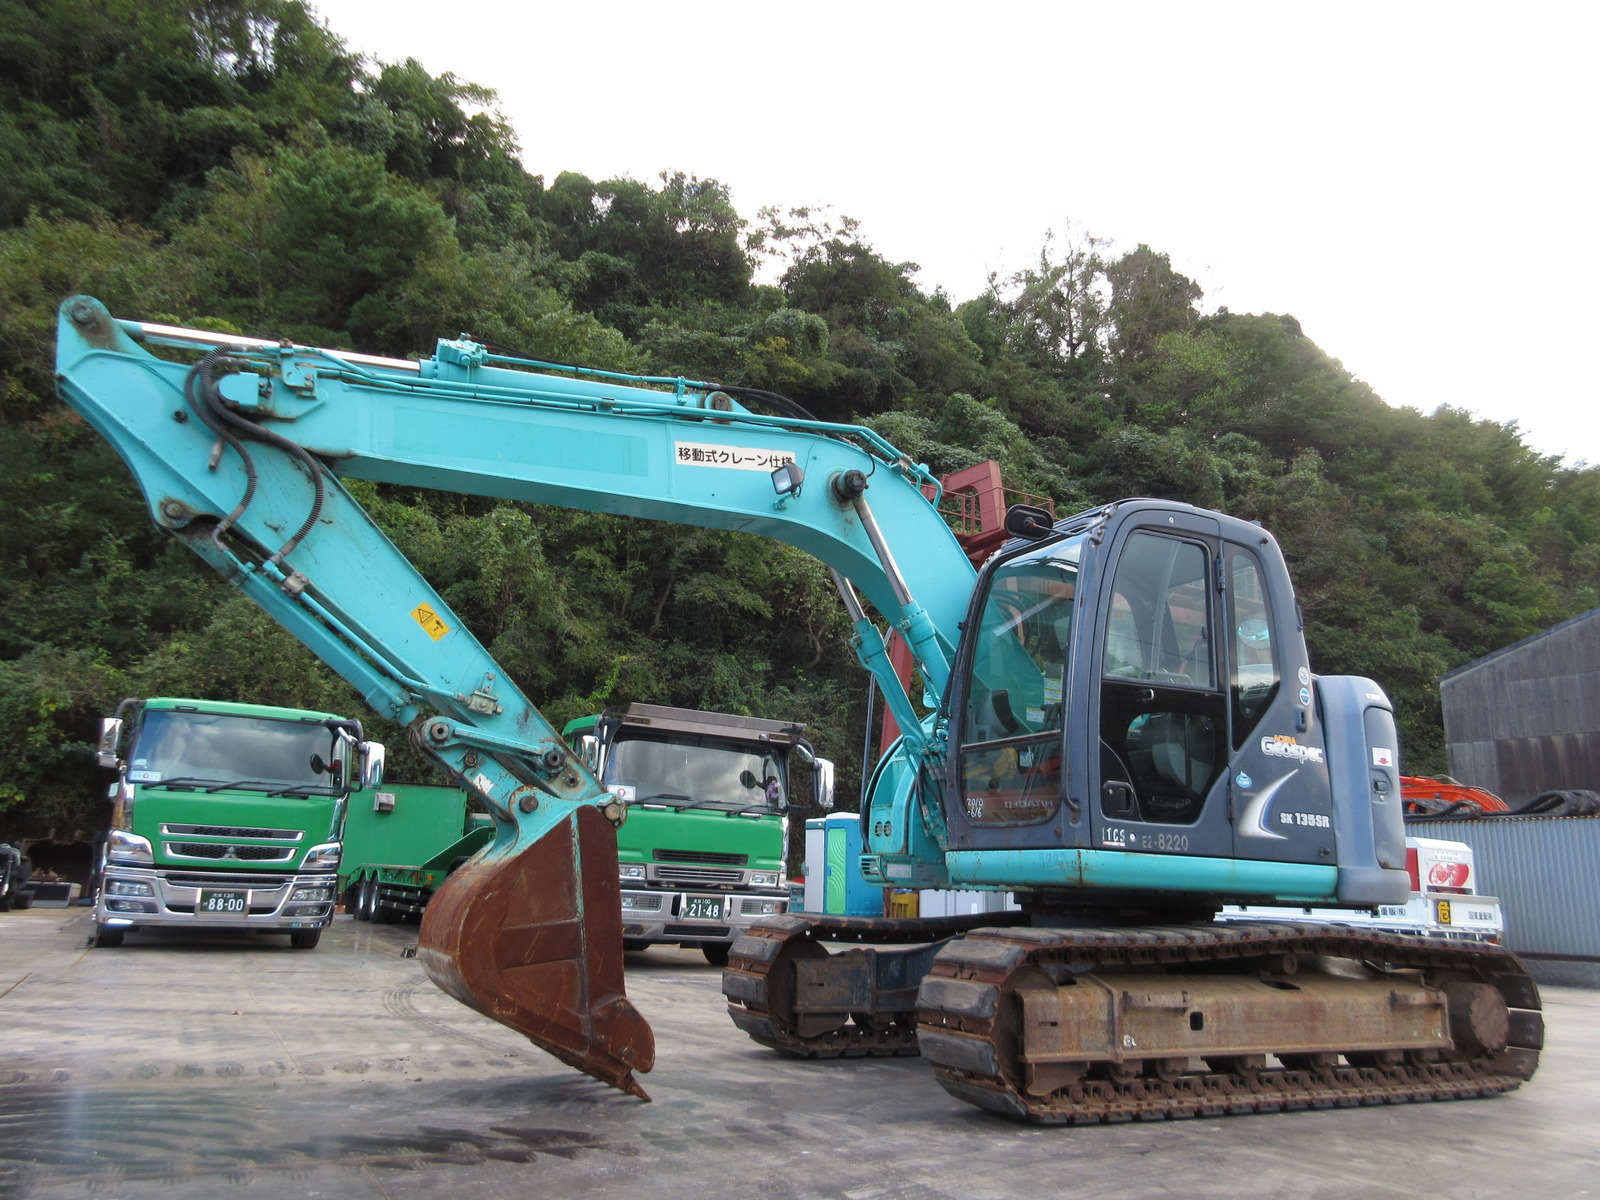 Used Construction Machine used Excavator KOBELCO SK135SR-2 Photos